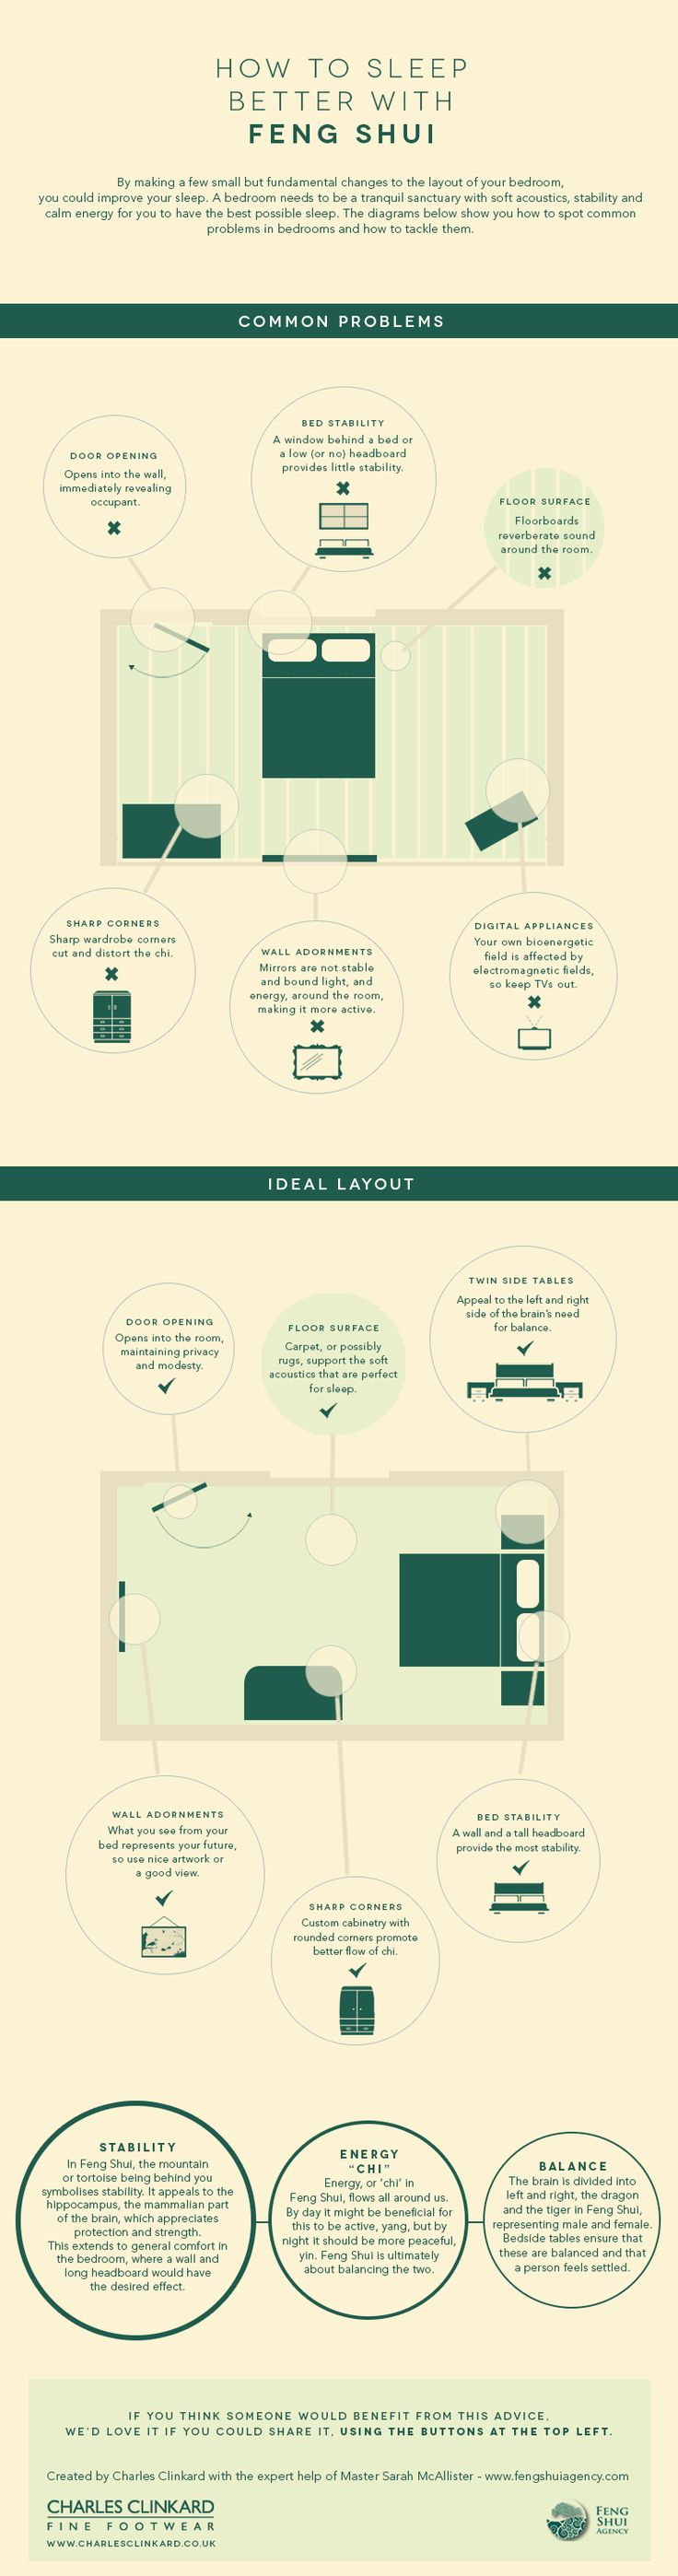 an interesting infographic about how to promote better sleep using feng shui in your bedroom. Interior Design Ideas. Home Design Ideas